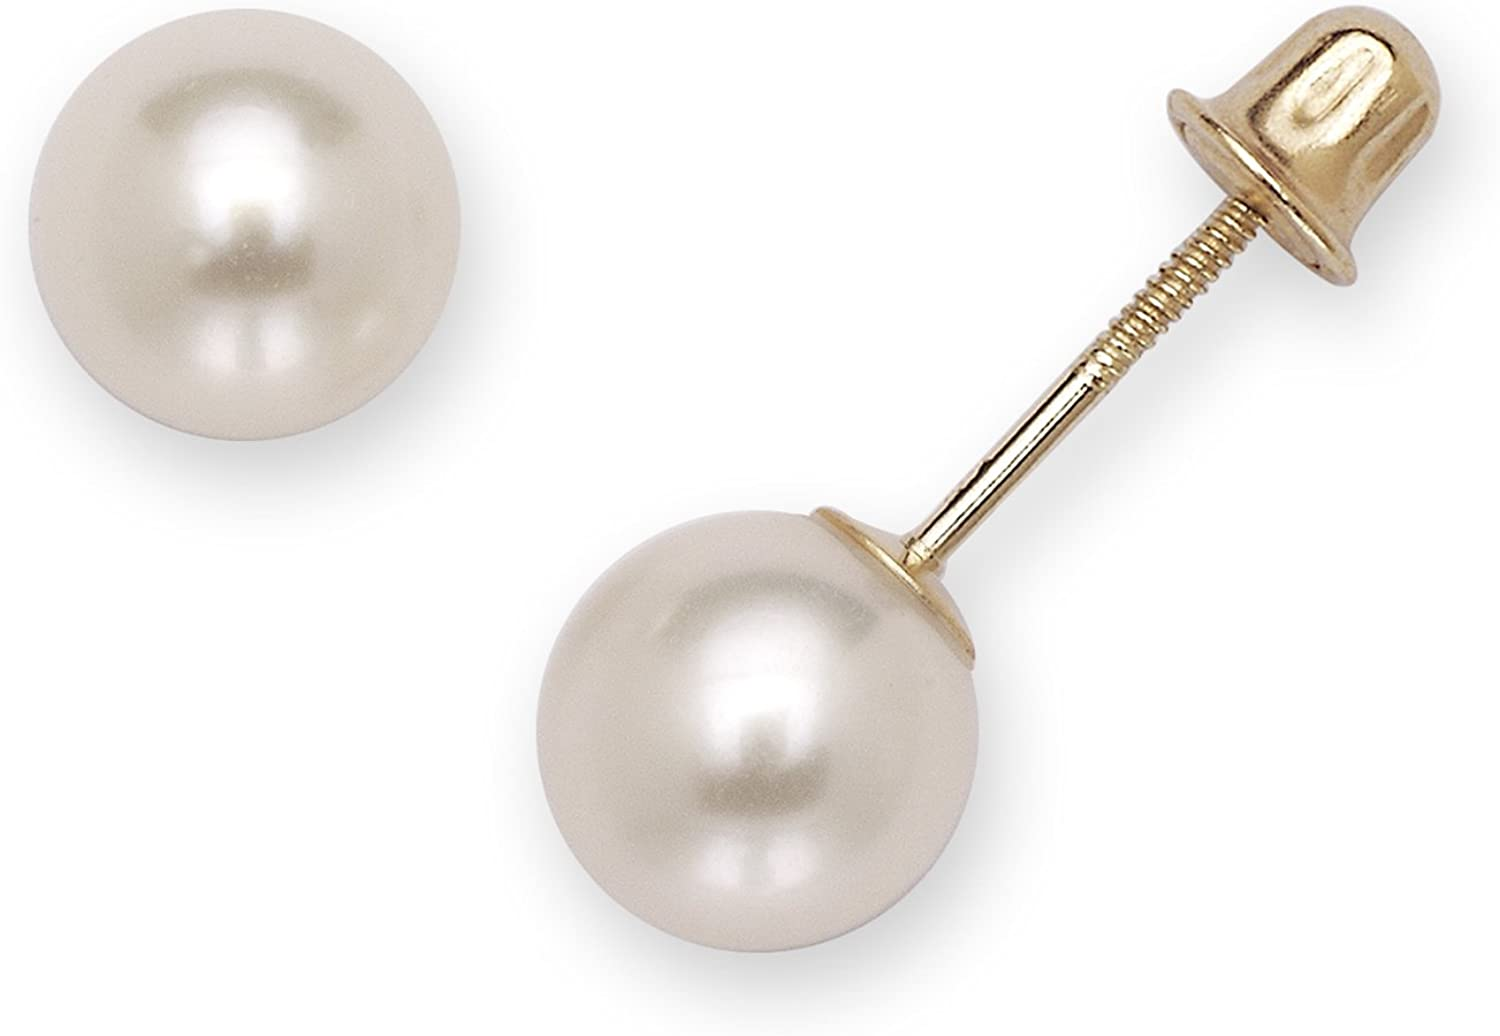 14k Yellow Gold White Cultured Pearl Screw Back Earrings Babies Toddlers Girls